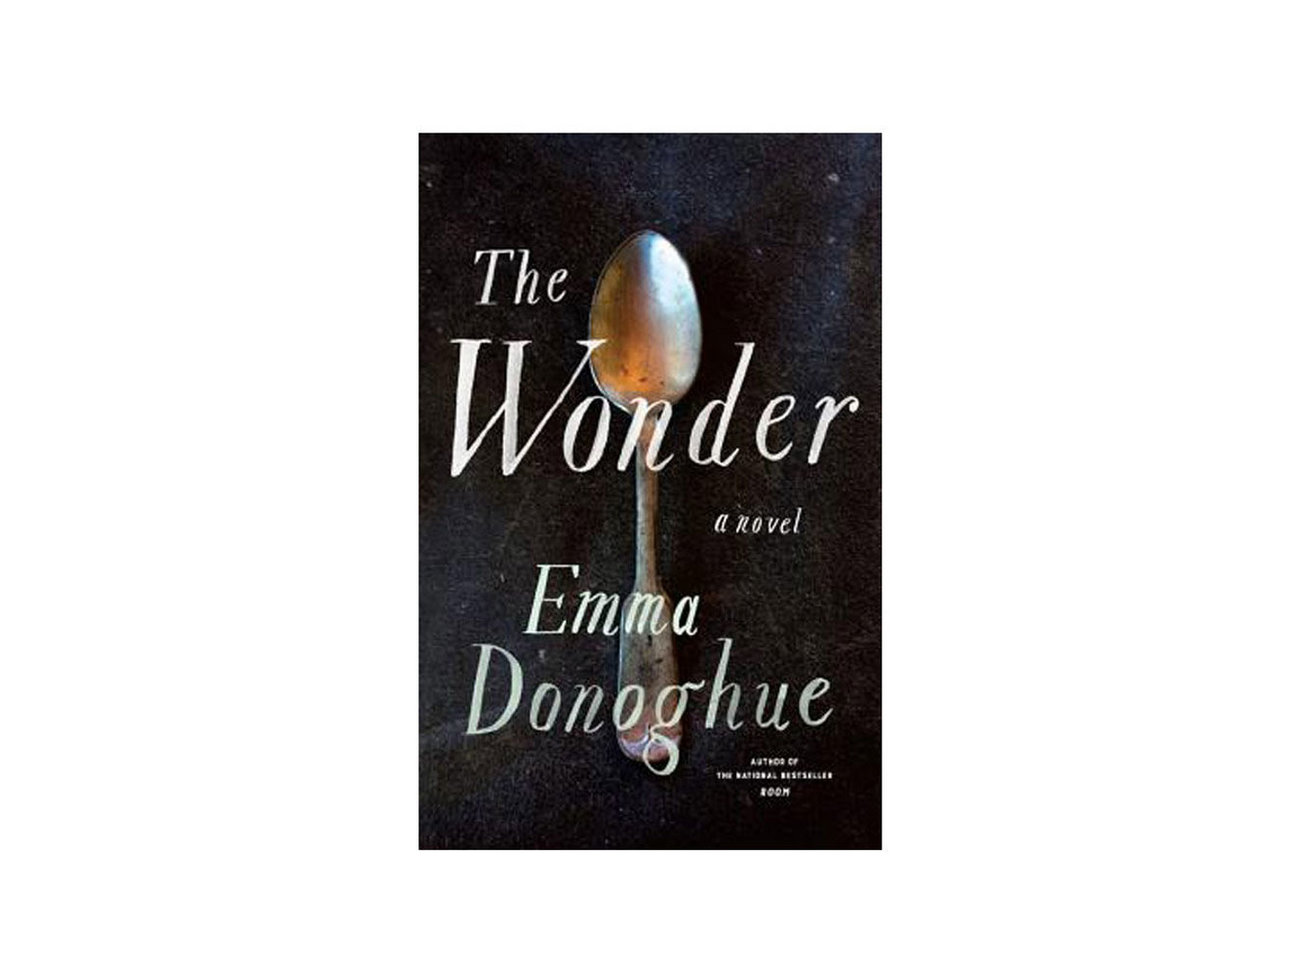 thewonder-BOOKS0916.jpg